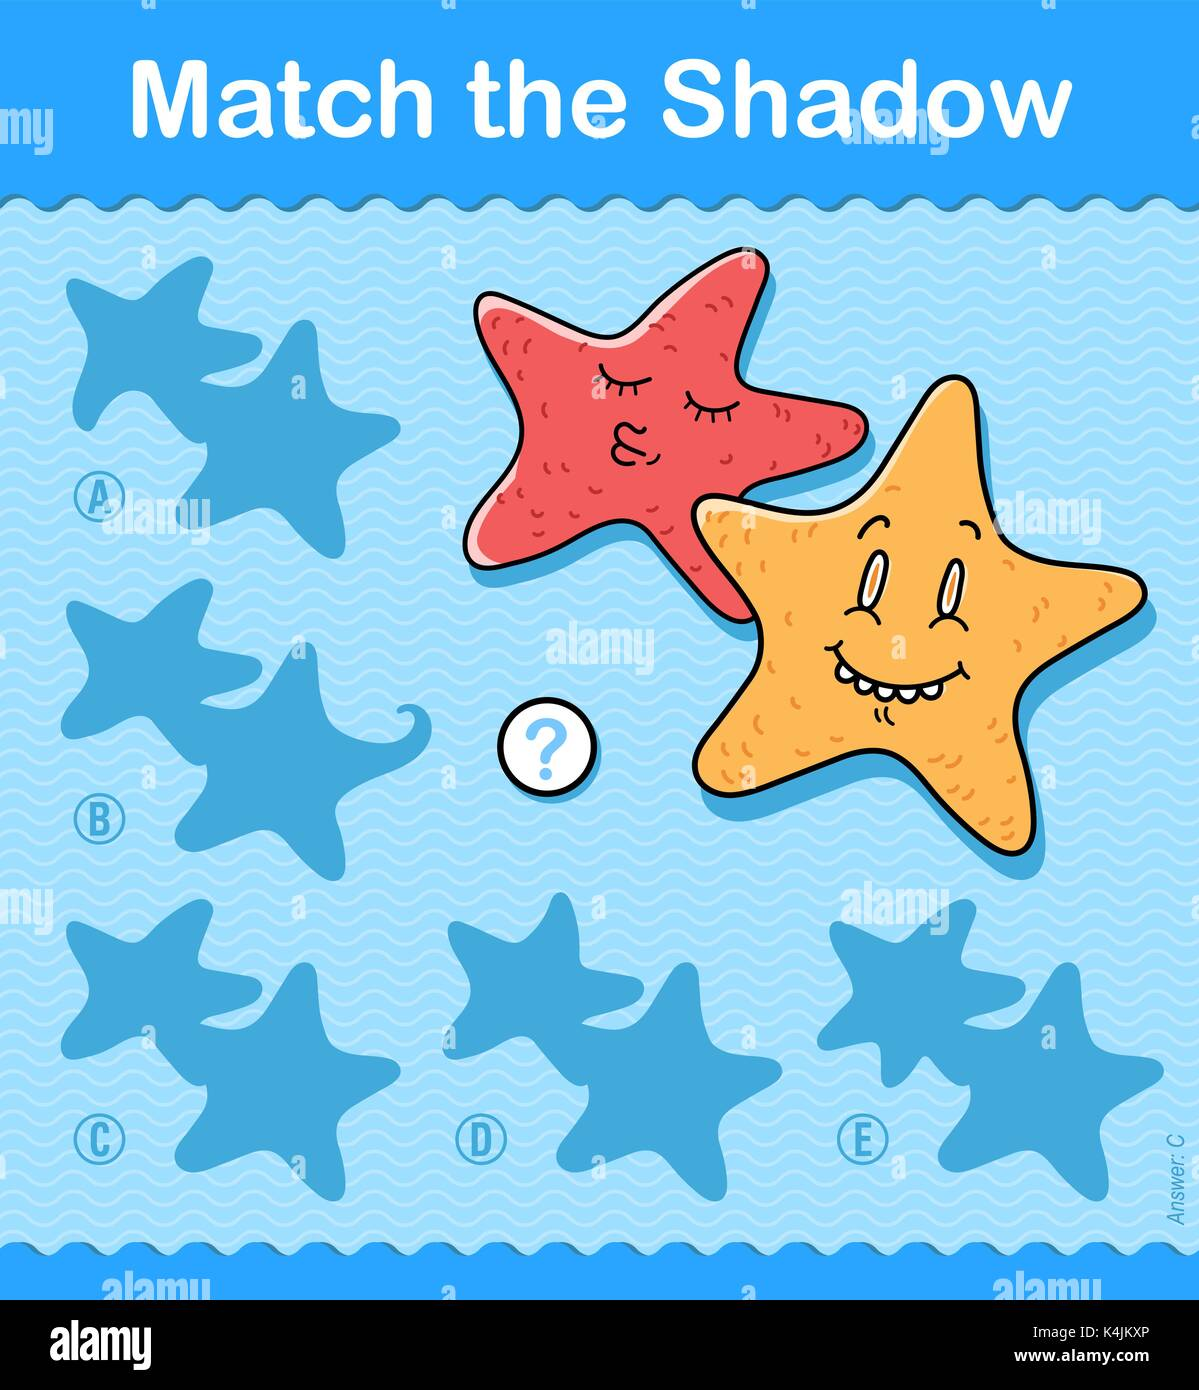 Match Shadow Puzzle Worksheet Kids Stock Photos & Match Shadow ...